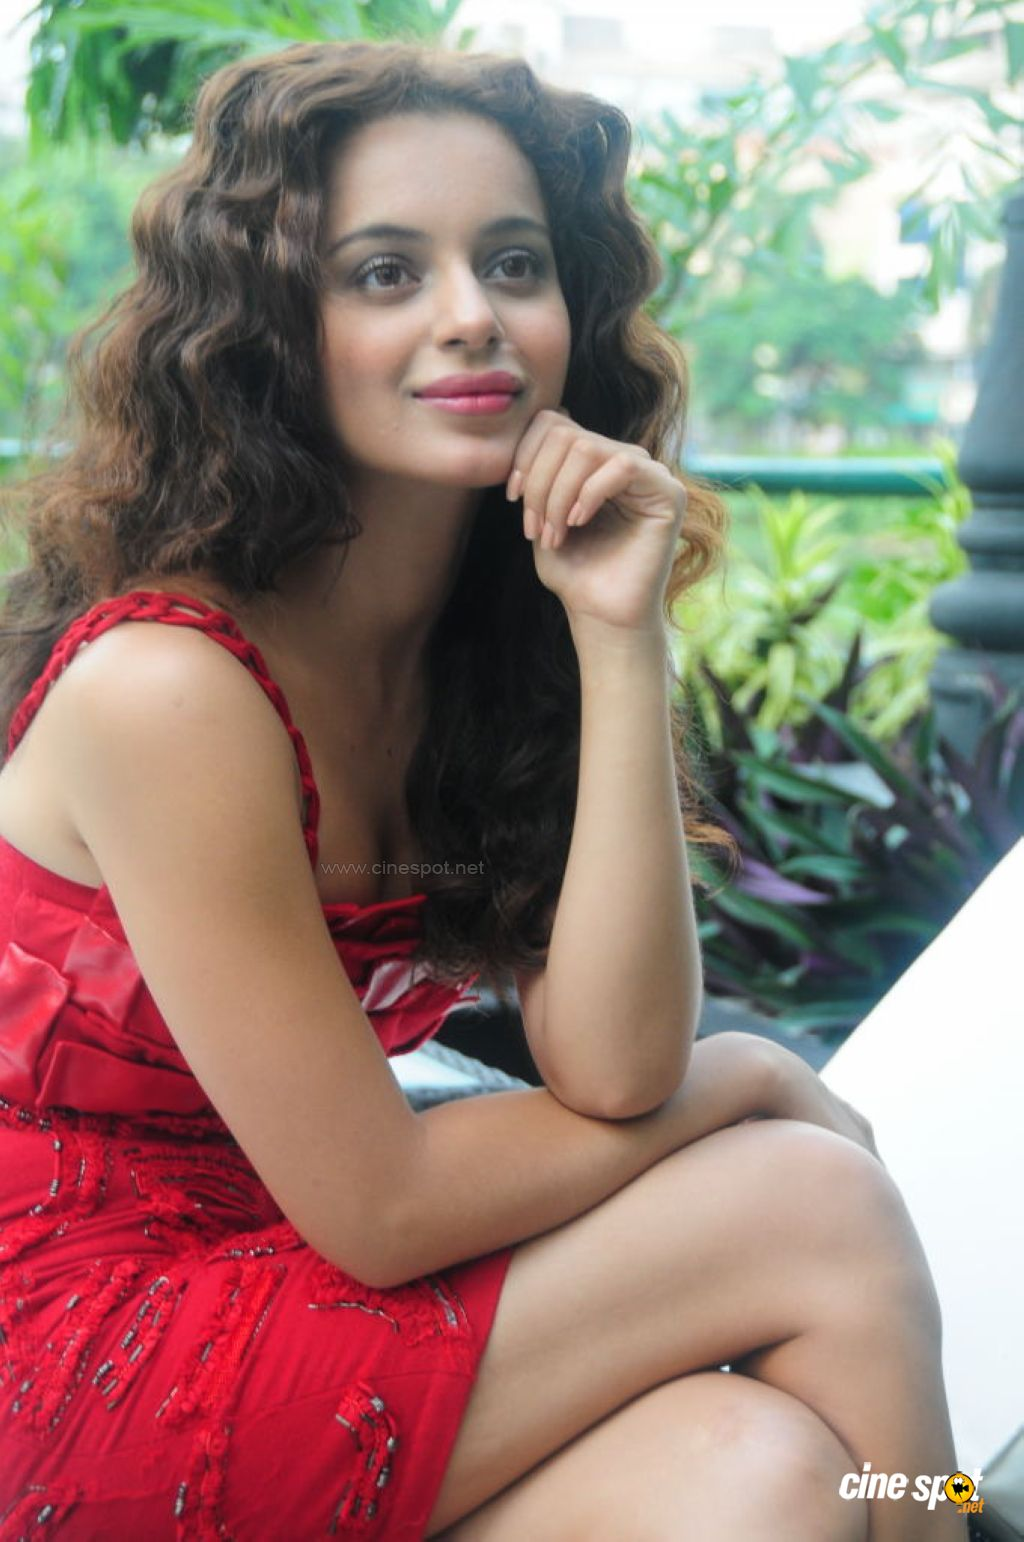 kangana ranaut telugu actress photos 14 actress kangana ranaut